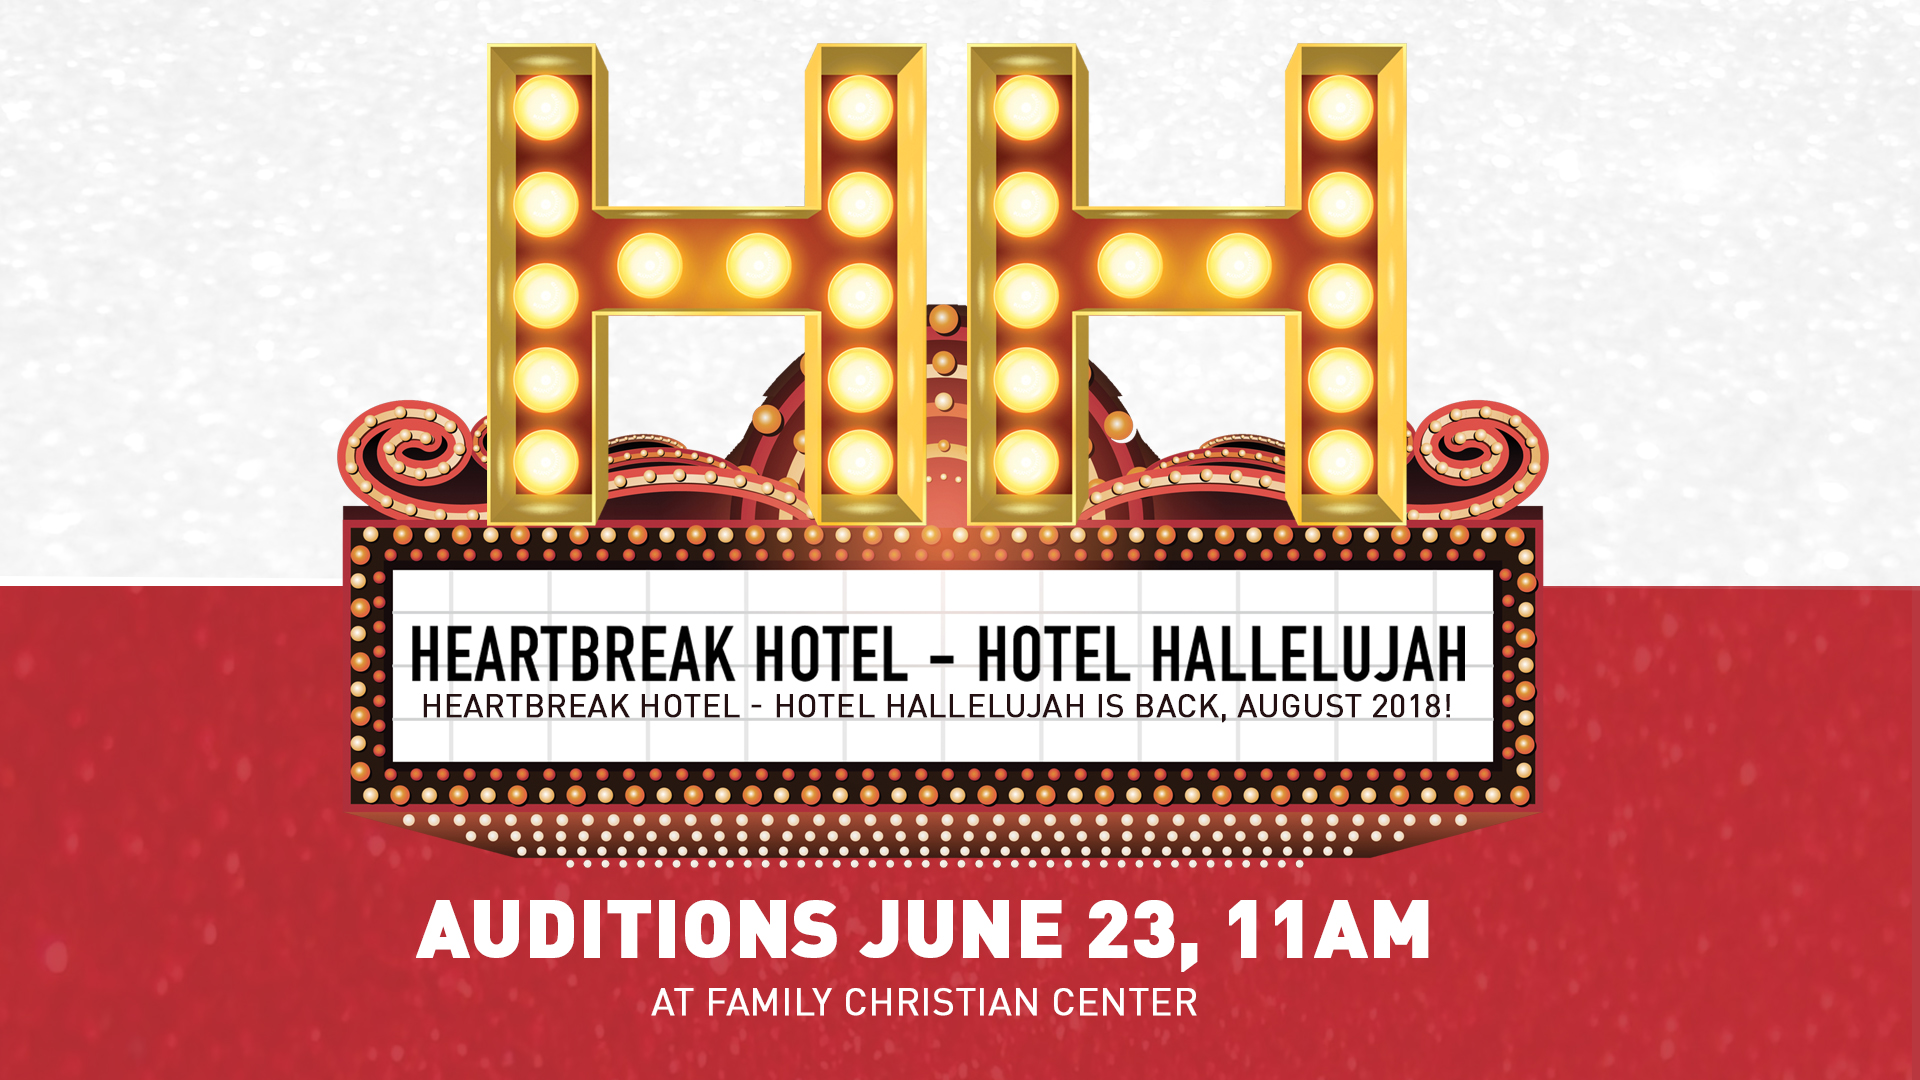 """HEARTBREAK HOTEL - HOTEL HALLELUJAH is back, August 2018! We'd love for you to be apart and audition, JUNE 23, 11AM at Family Christian Center!  Heartbreak Hotel/Hotel Hallelujah auditions are Saturday, June 23, 2018 at 11:00am! If you want to be on stage, please fill out the """"Actors/dances"""" application.  If you are interested in working behind the scenes, fill out the """"behind the scenes"""" application.  Come prepared for your audition in costume and with your music.  H4 Actors/Dancers Applications:  https://familychristiancenter.wufoo.com/forms/h4-2018-actordancer-application/   H4 Behind the Scenes Applications:  https://familychristiancenter.wufoo.com/forms/h4-2018-behind-the-scenes-application/   All questions regarding auditions should be directed to the following email:  auditions@refugeproductions.com   Here are just a few celebrity impersonation acts we're looking to see:"""